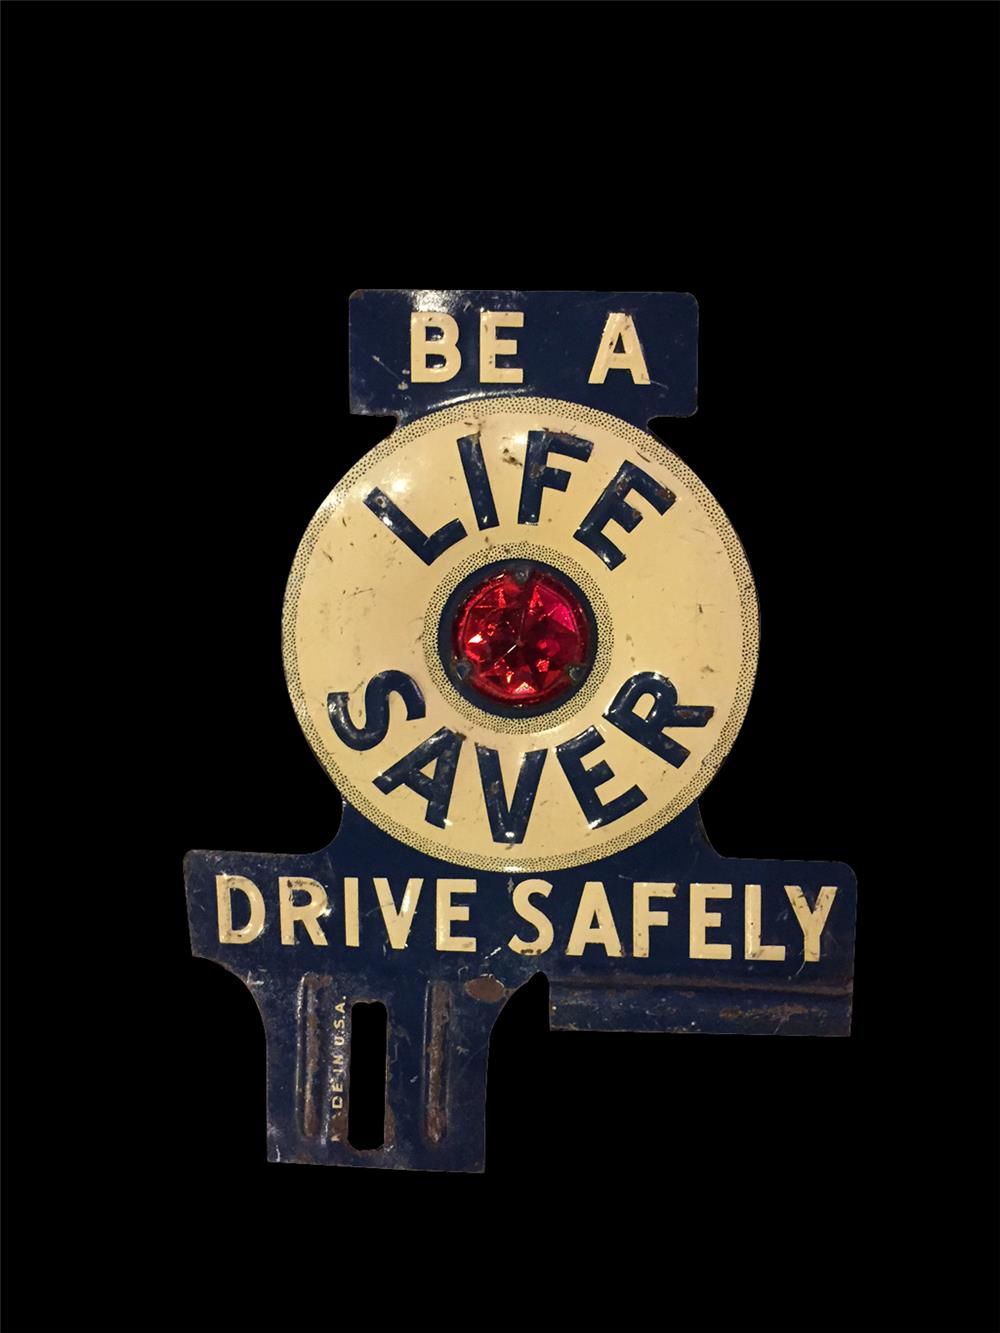 Wonderful 1930s Be A Life Saver - Drive Safely license plate attachment sign with reflector. - Front 3/4 - 192043